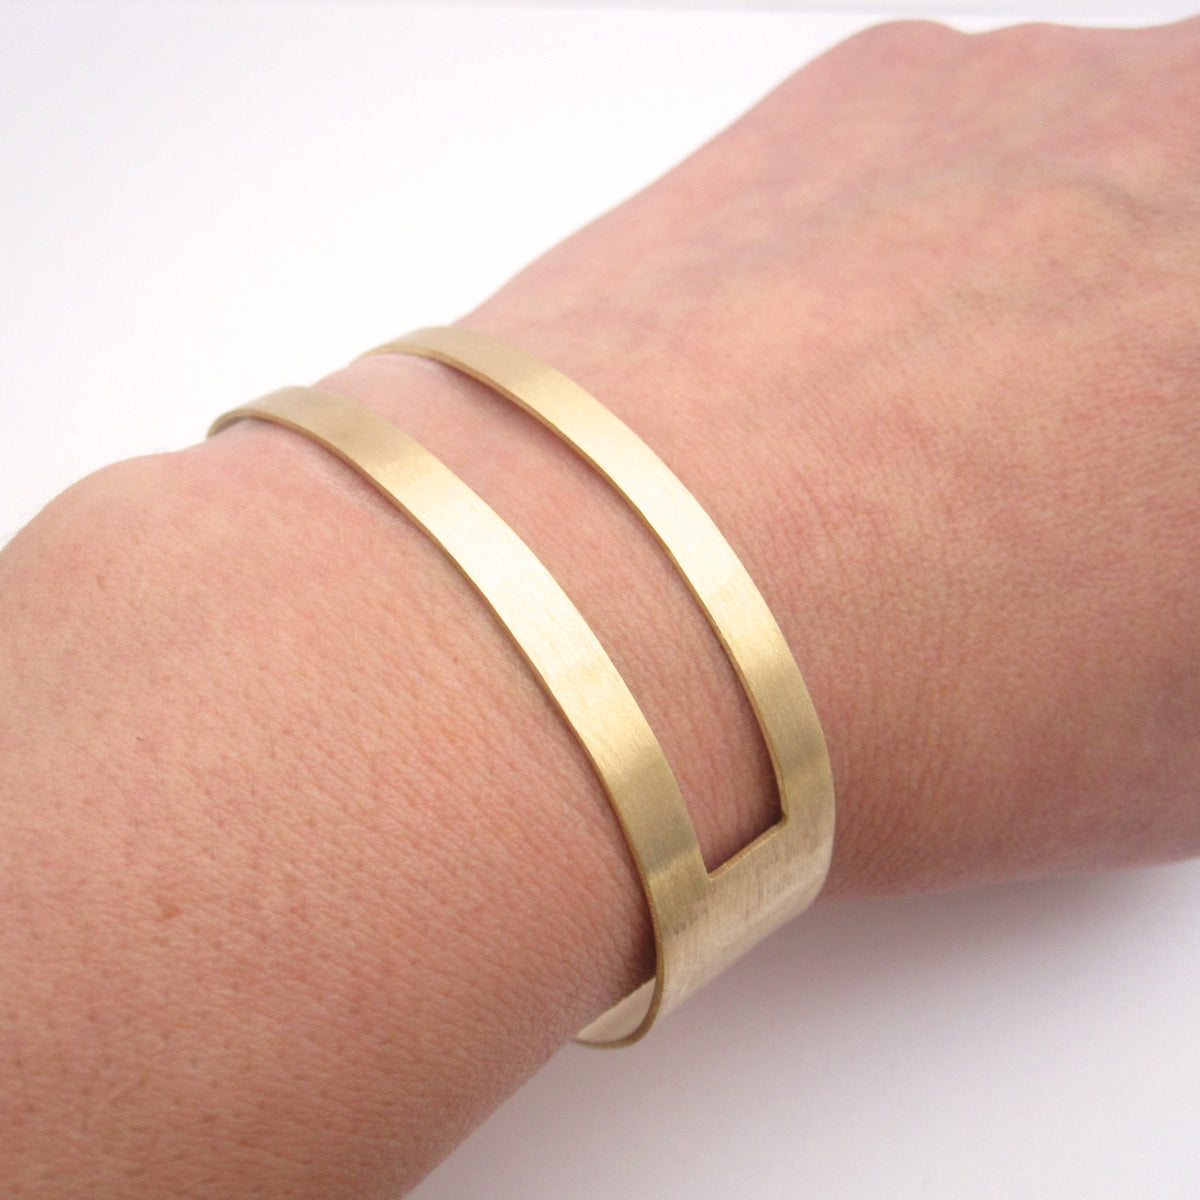 Chic Gold Tone, Brass Square Open Cut Cuff Hand-Made Bracelet - 0185 - Virginia Wynne Designs